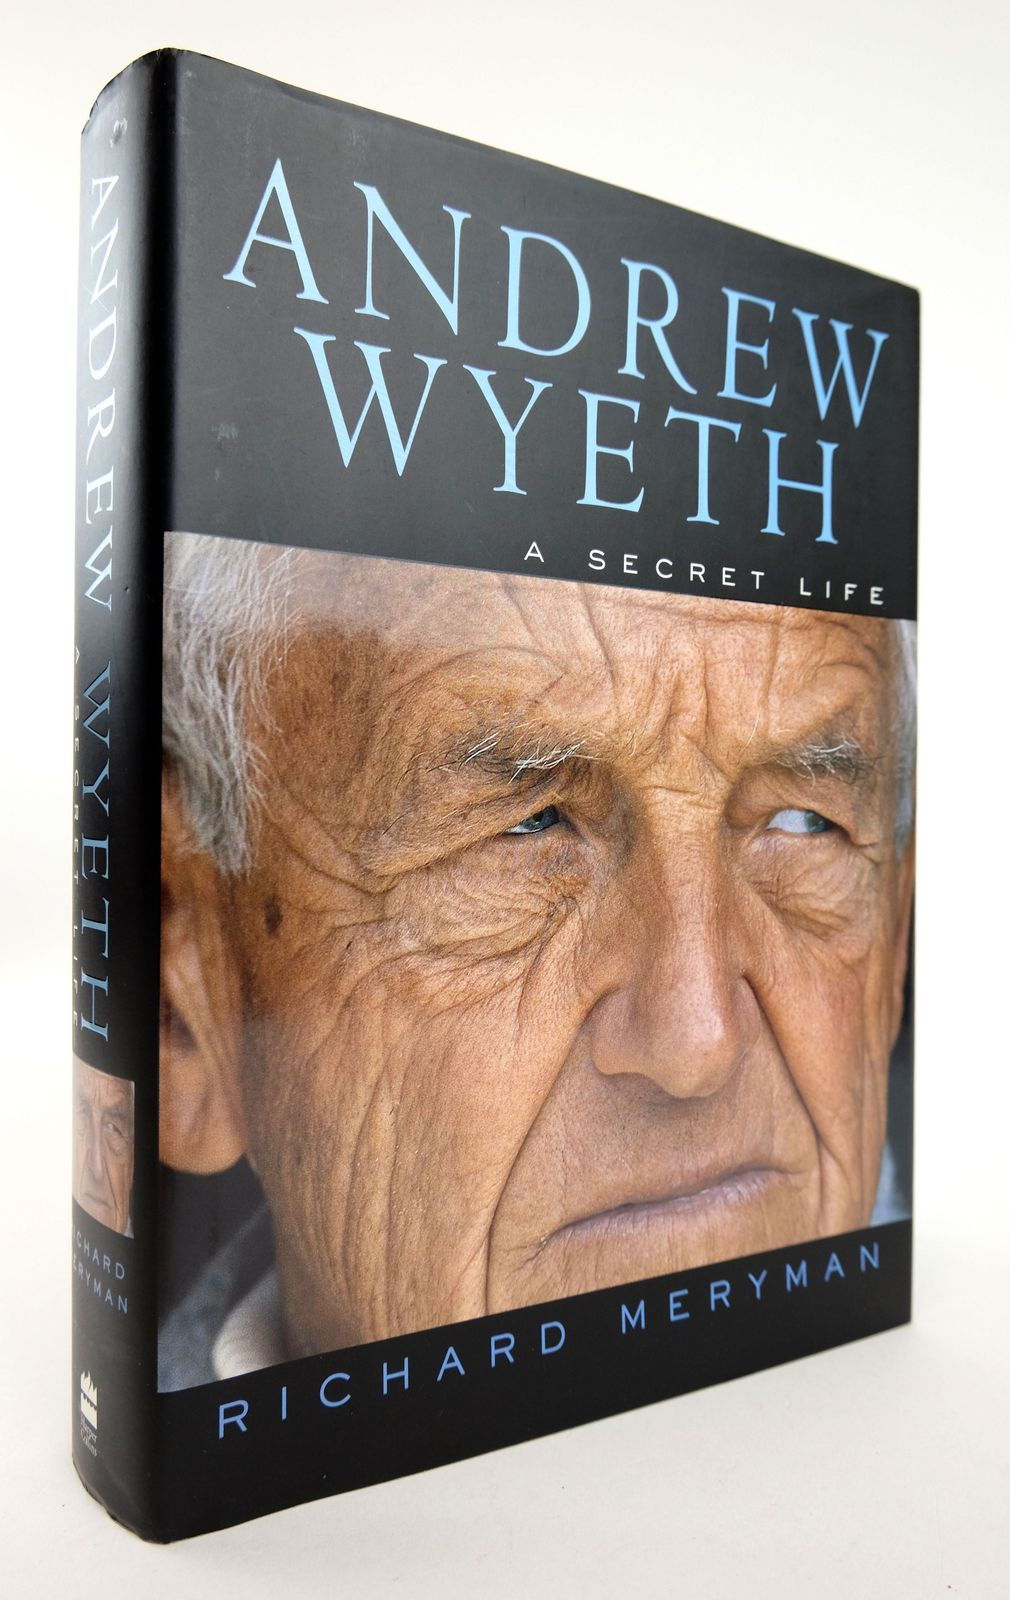 Photo of ANDREW WYETH: A SECRET LIFE written by Meryman, Richard illustrated by Wyeth, Andrew published by Harpercollins Publishers Ltd (STOCK CODE: 1818946)  for sale by Stella & Rose's Books